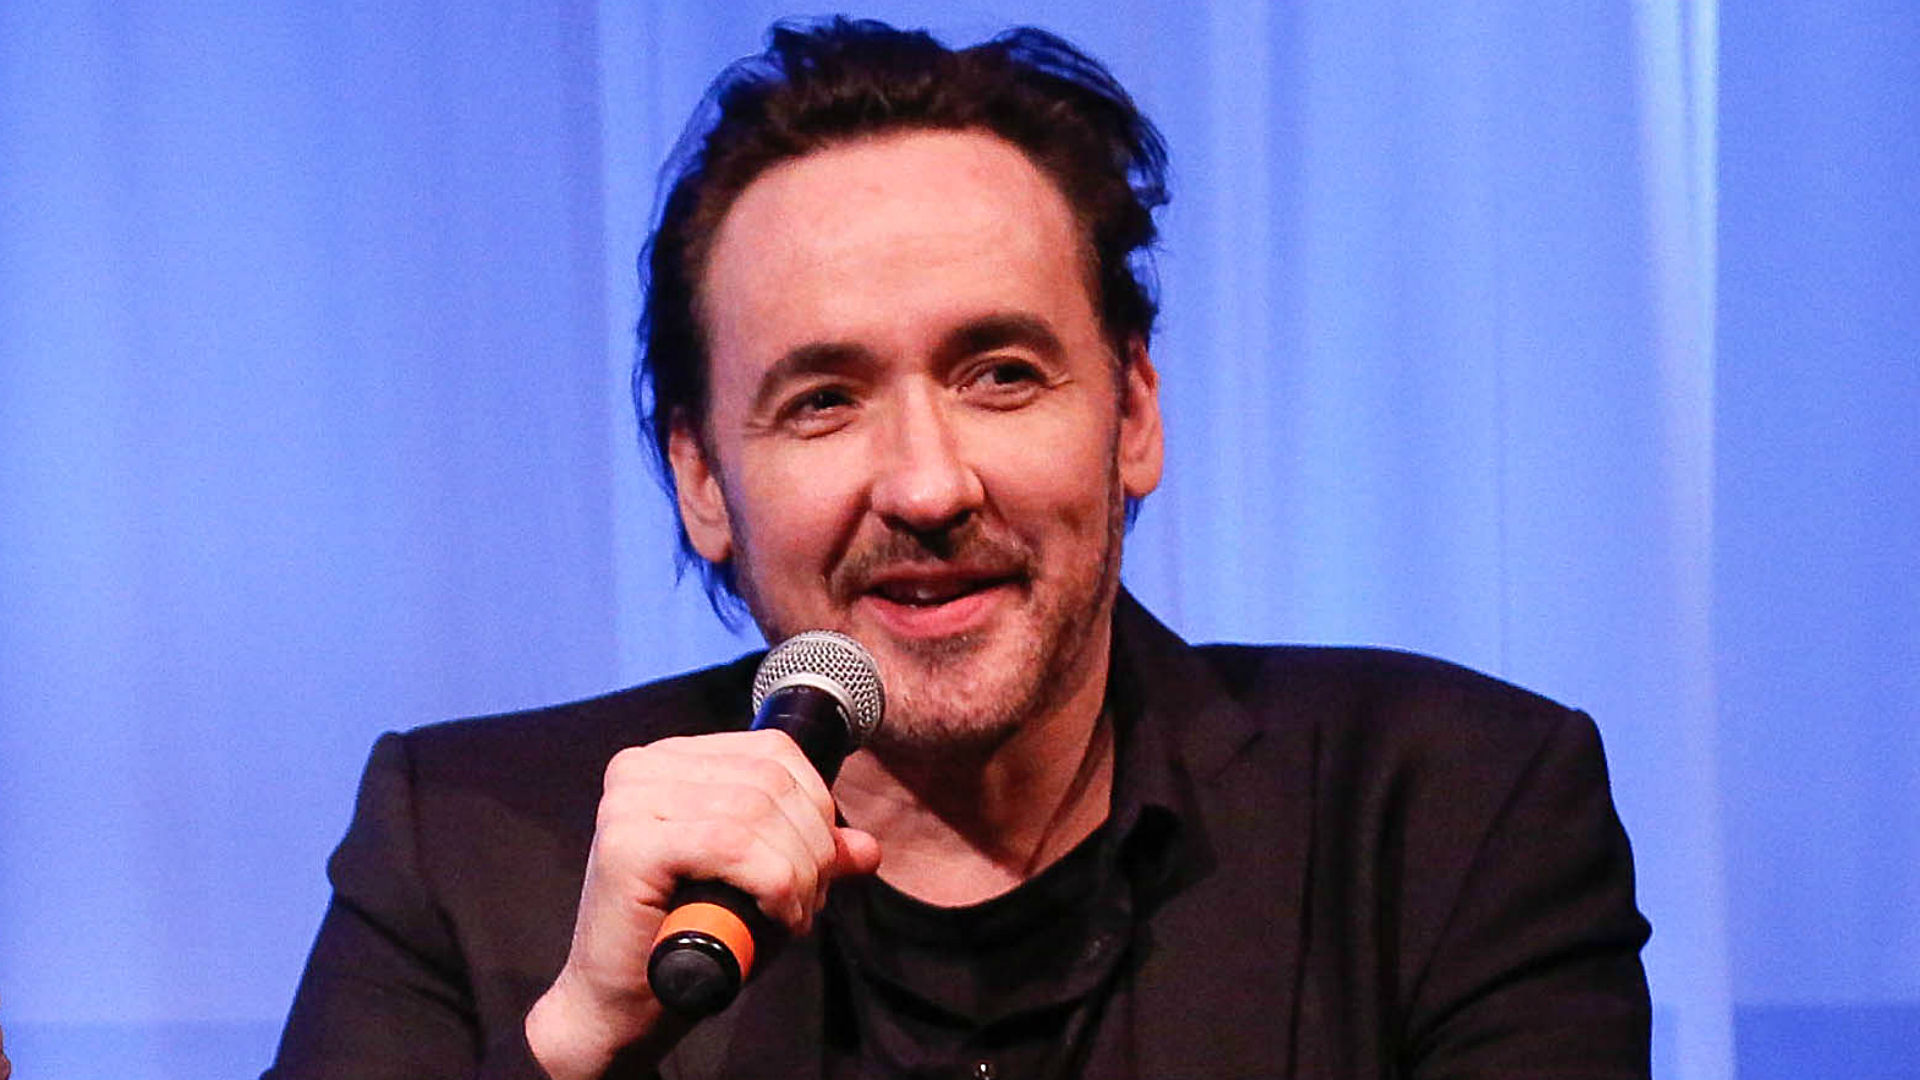 John Cusack Backgrounds